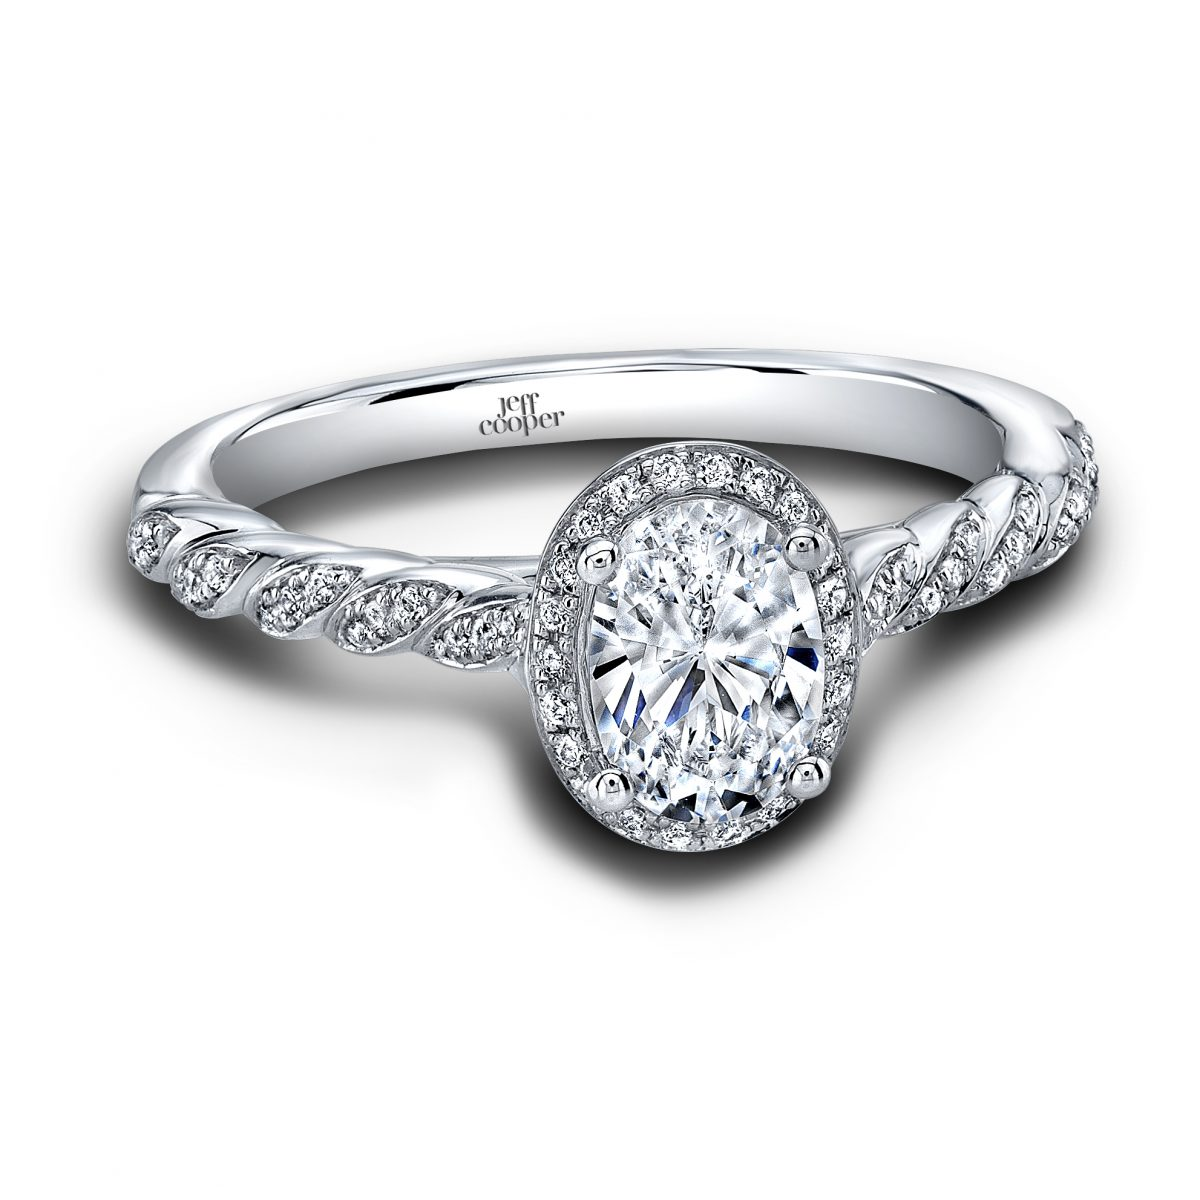 66c8f2939bd71 Jeff Cooper Designs Engagement Ring Featured In Engagement 101